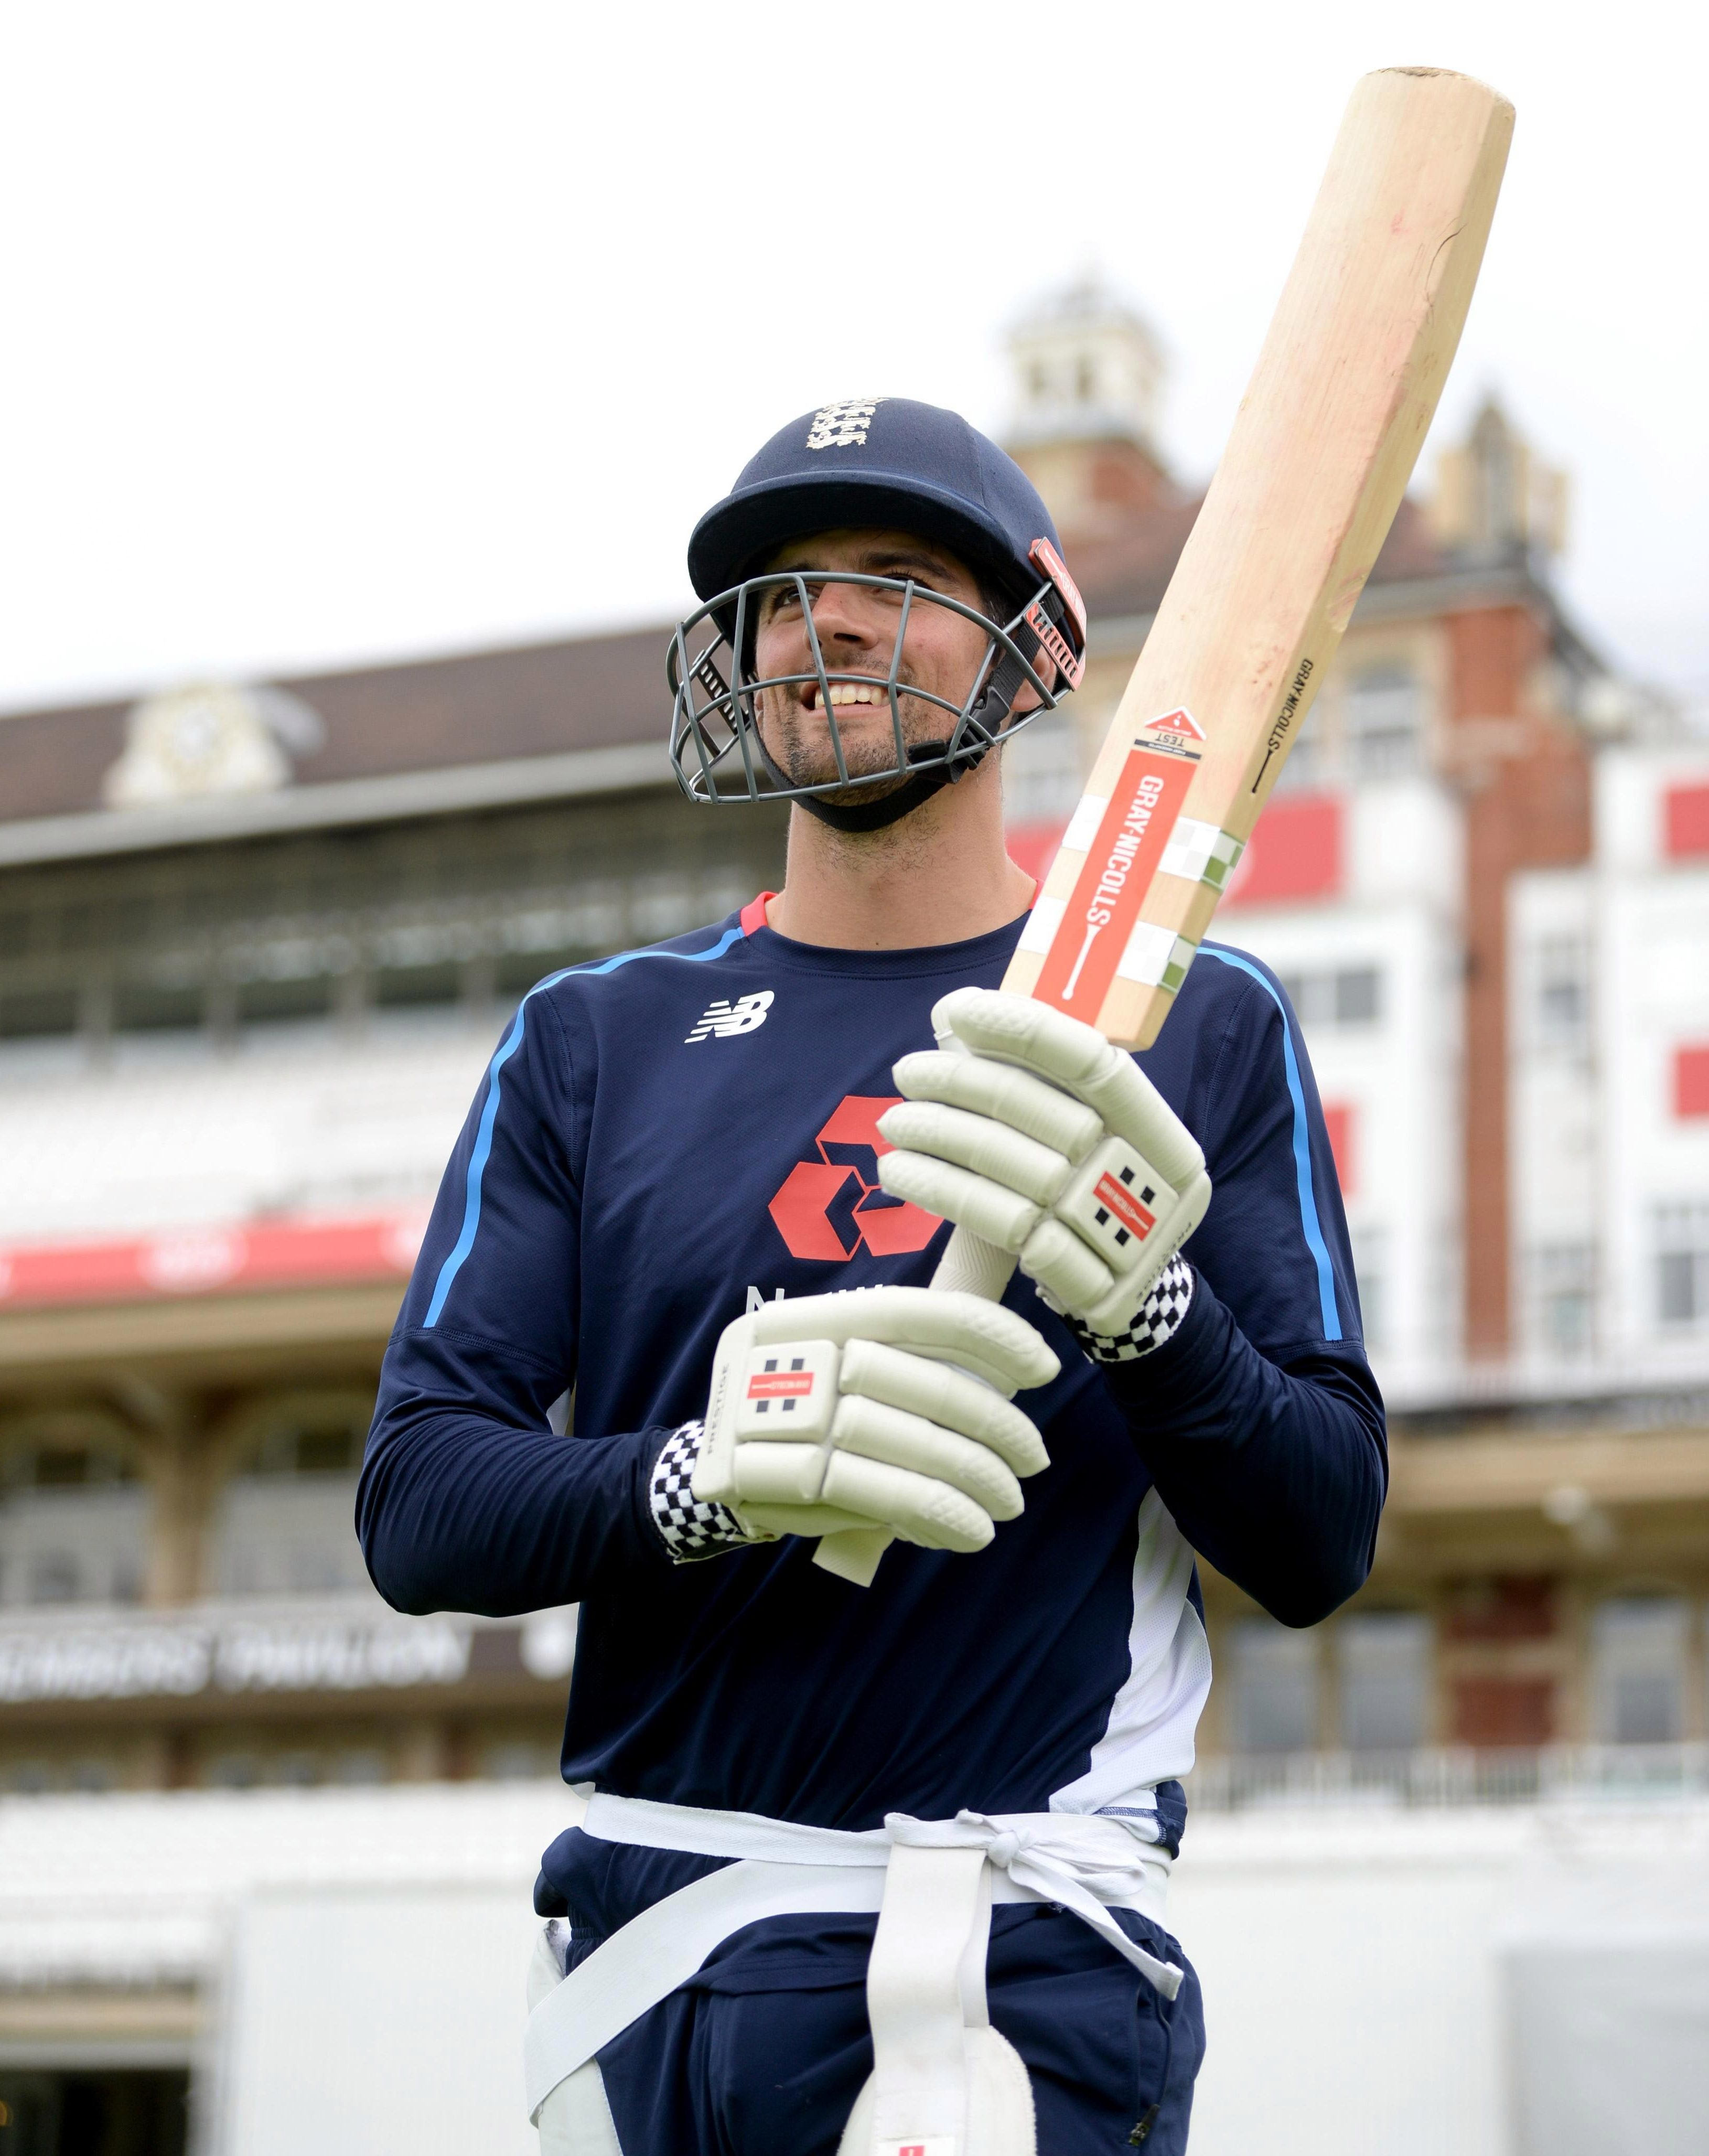 Alastair Cook will play his final match against India at The Oval